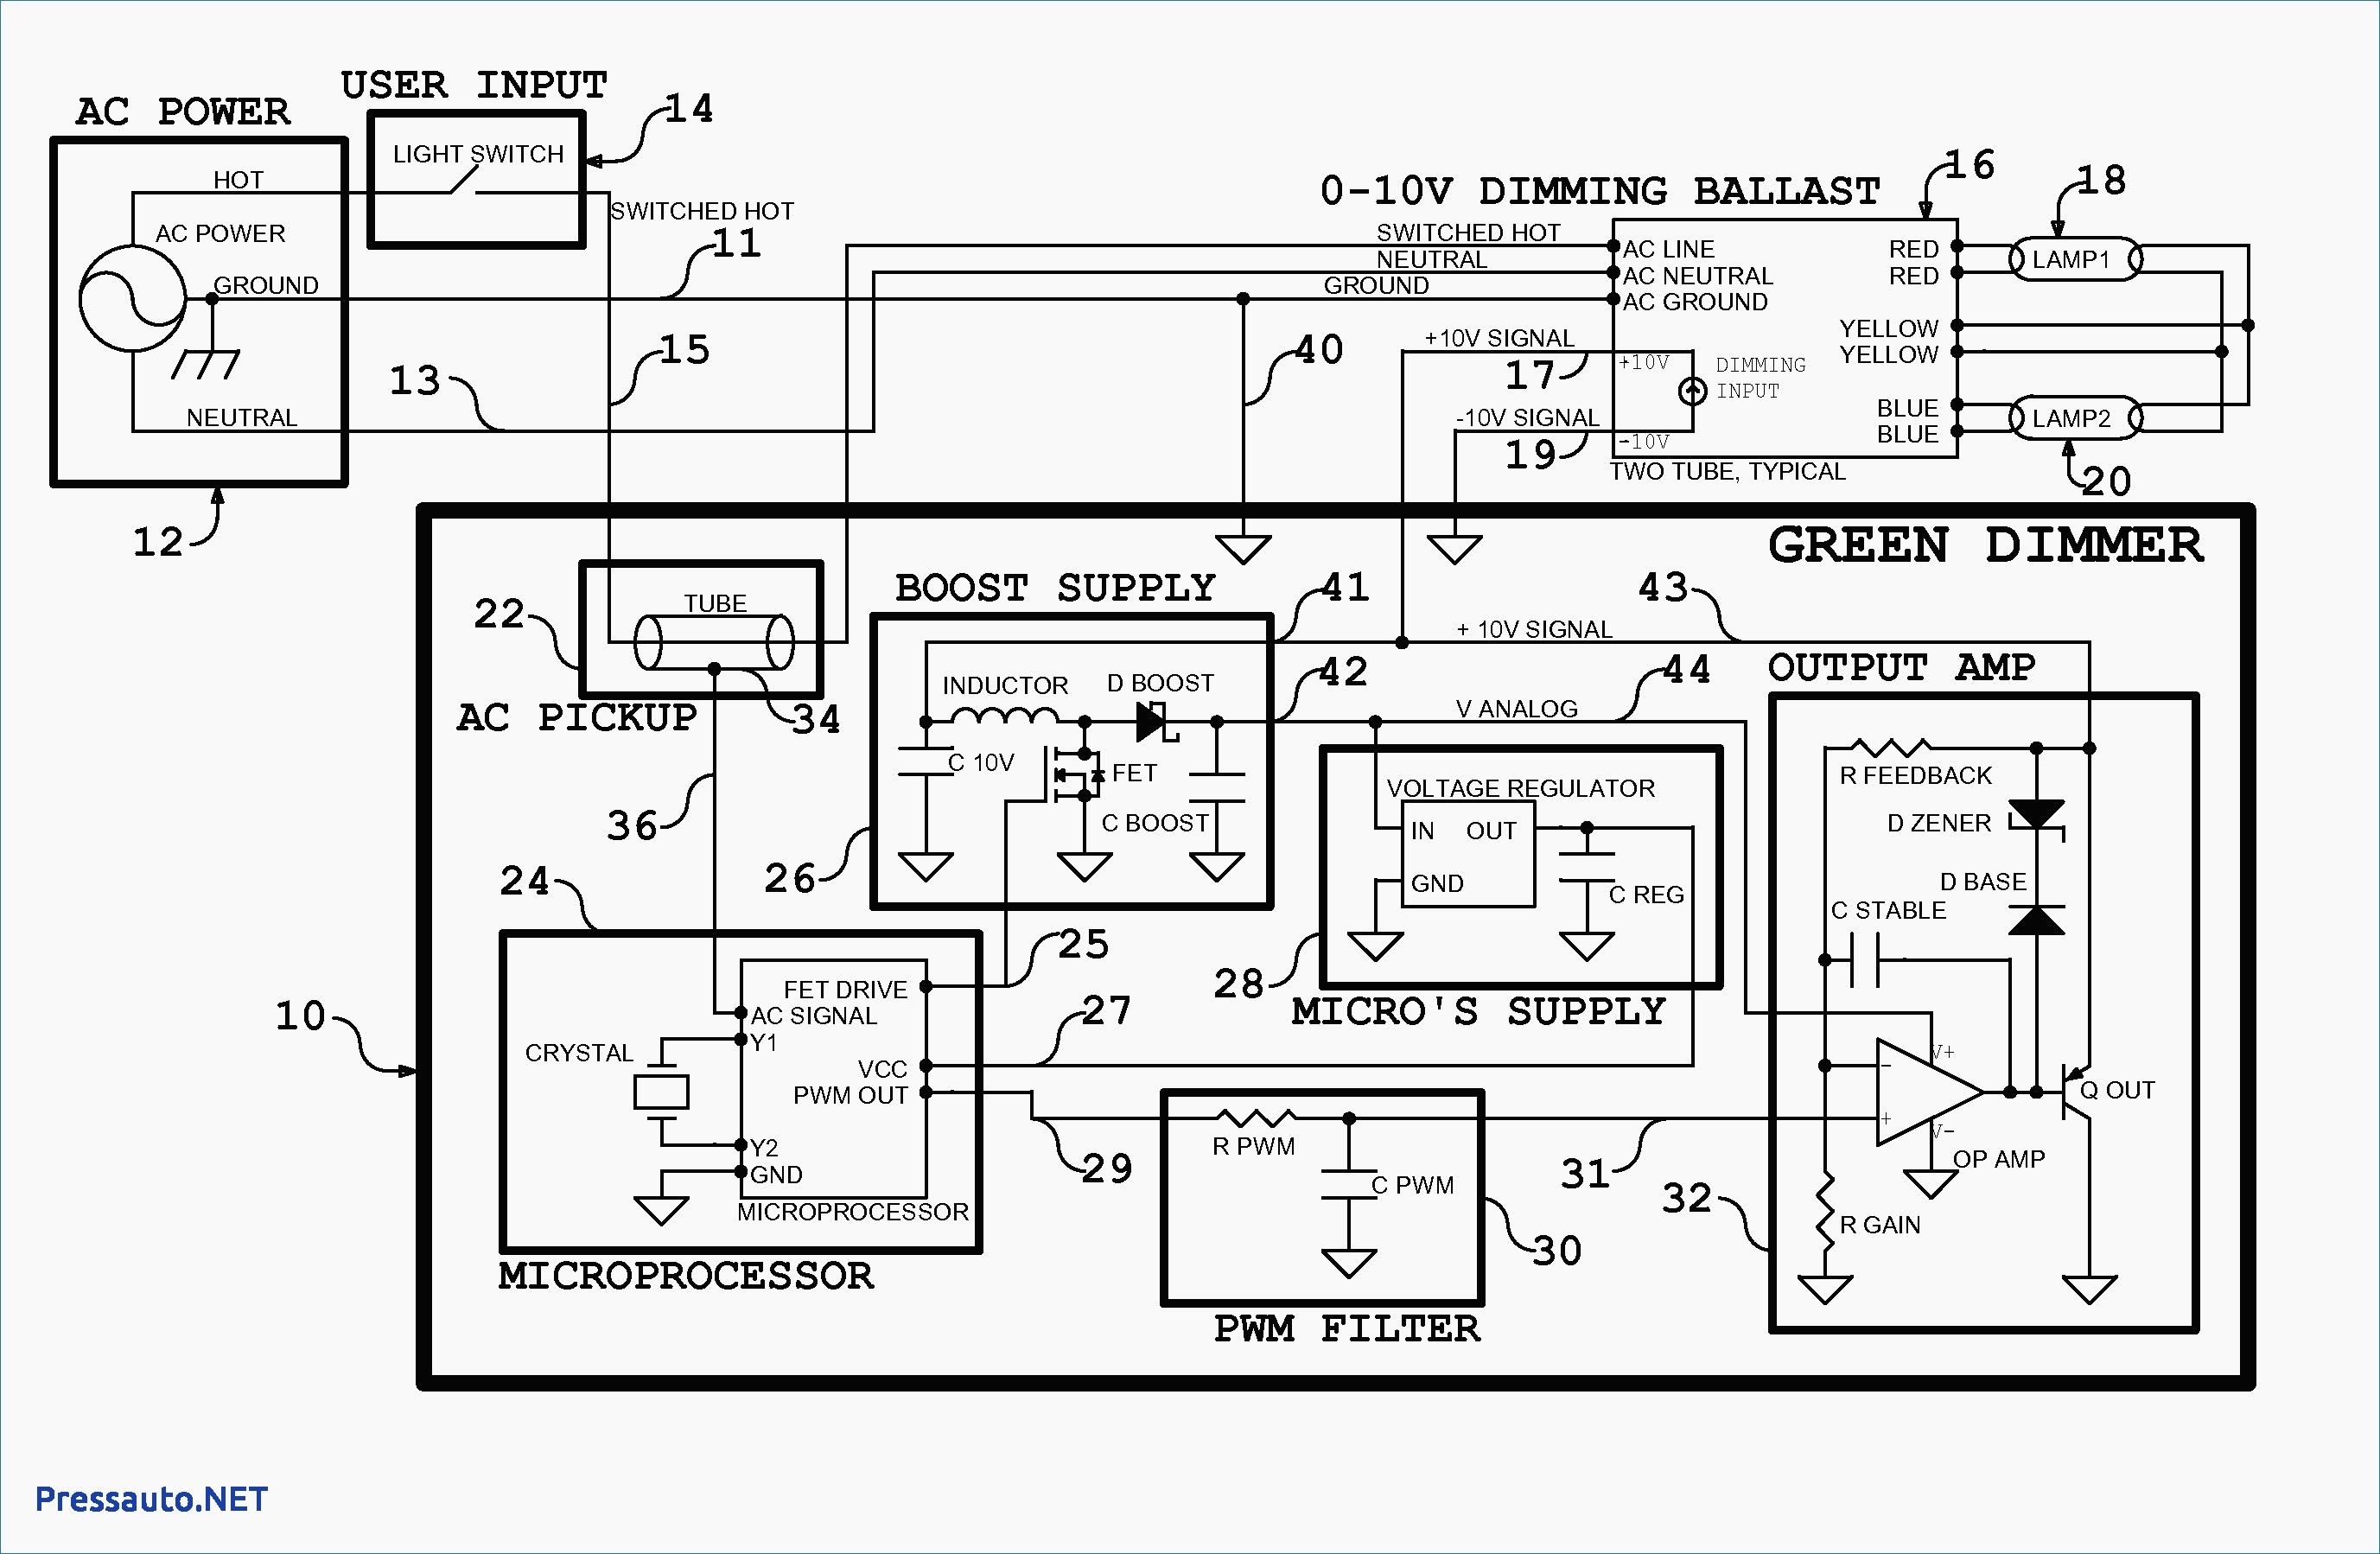 cfl42 dimming ballast wiring diagrams wiring diagram  0 10 dimming ballast wiring diagram today wiring diagramwiring diagram furthermore 0 10v dimming wiring diagram